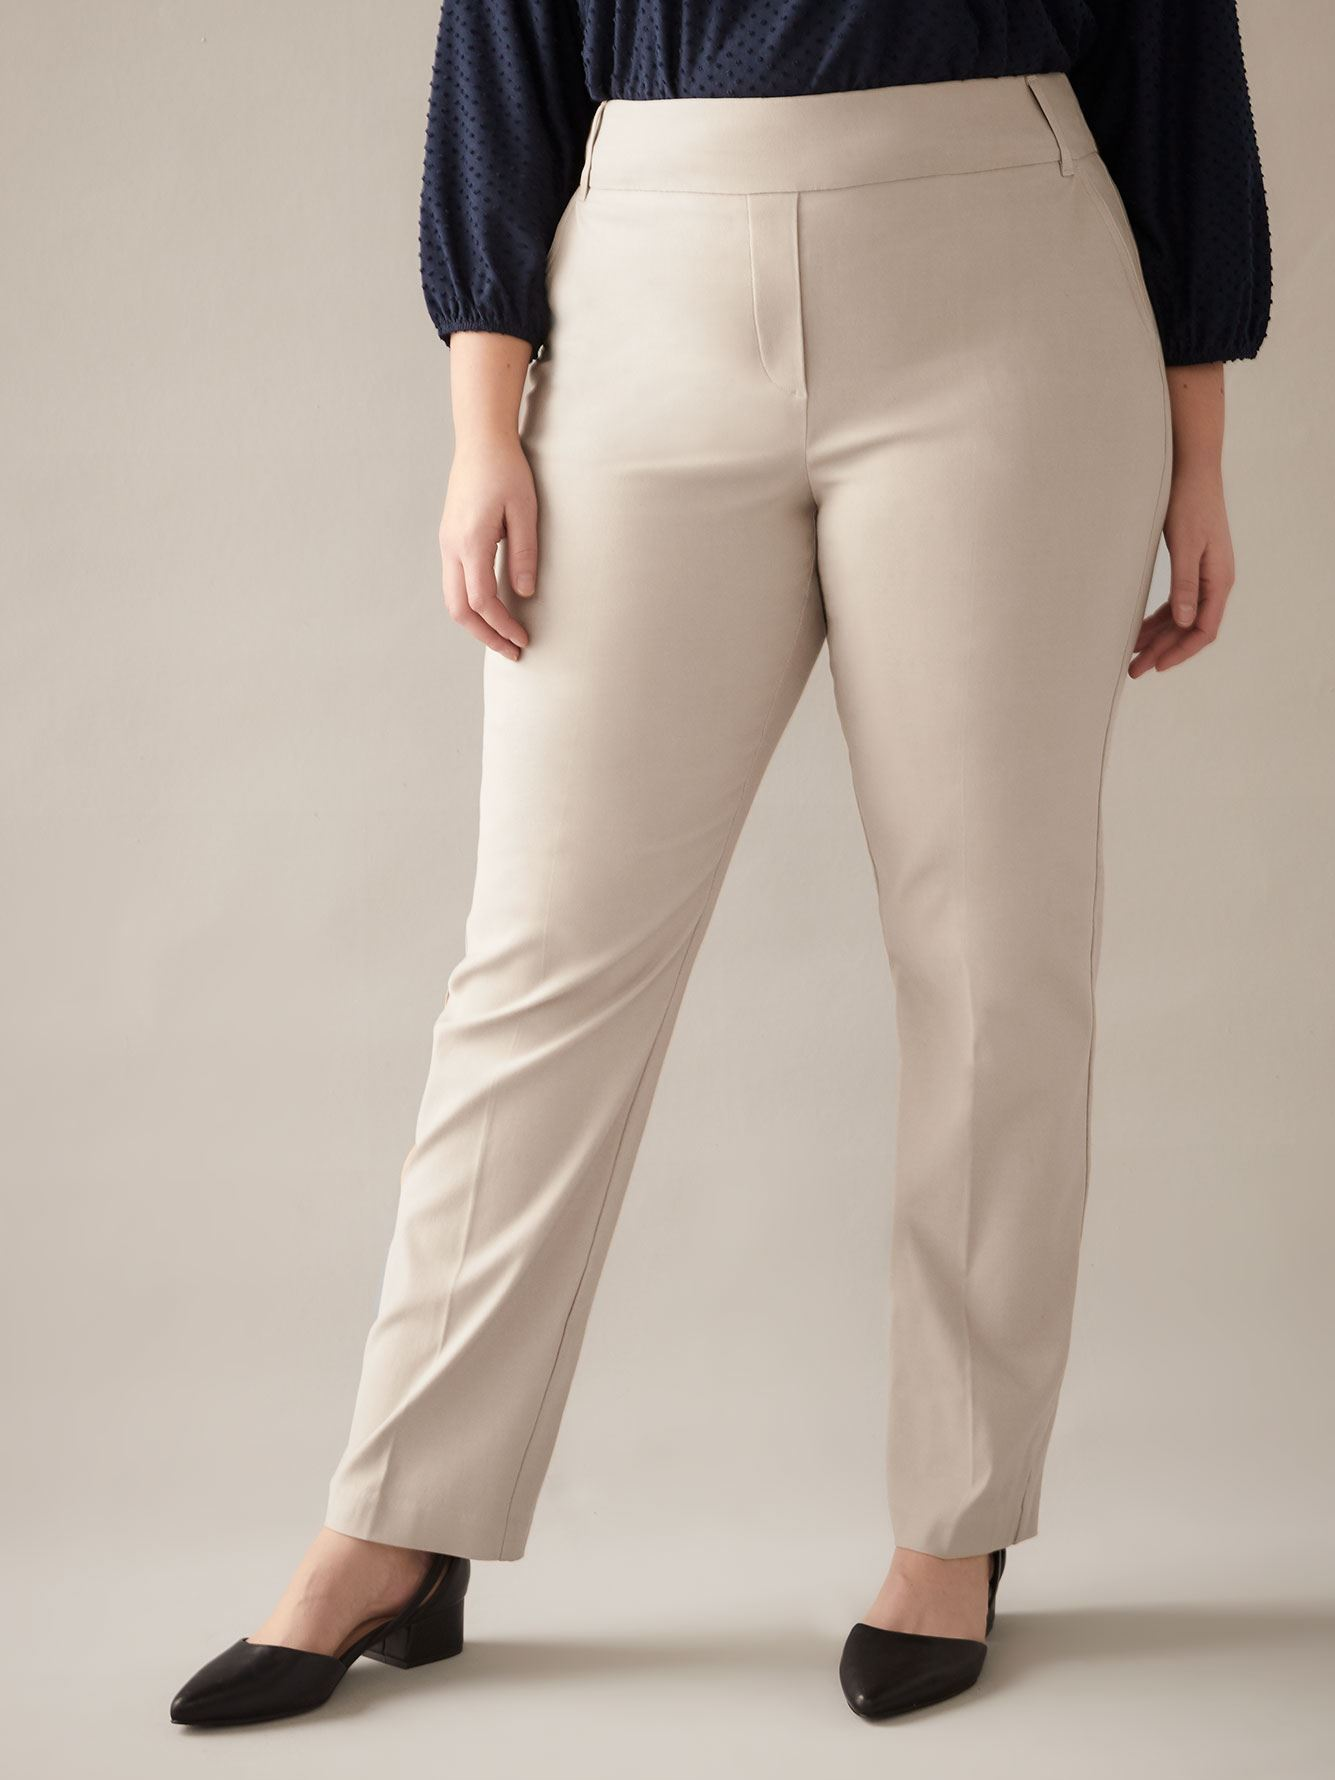 Grande, Pantalon droit Savvy - In Every Story